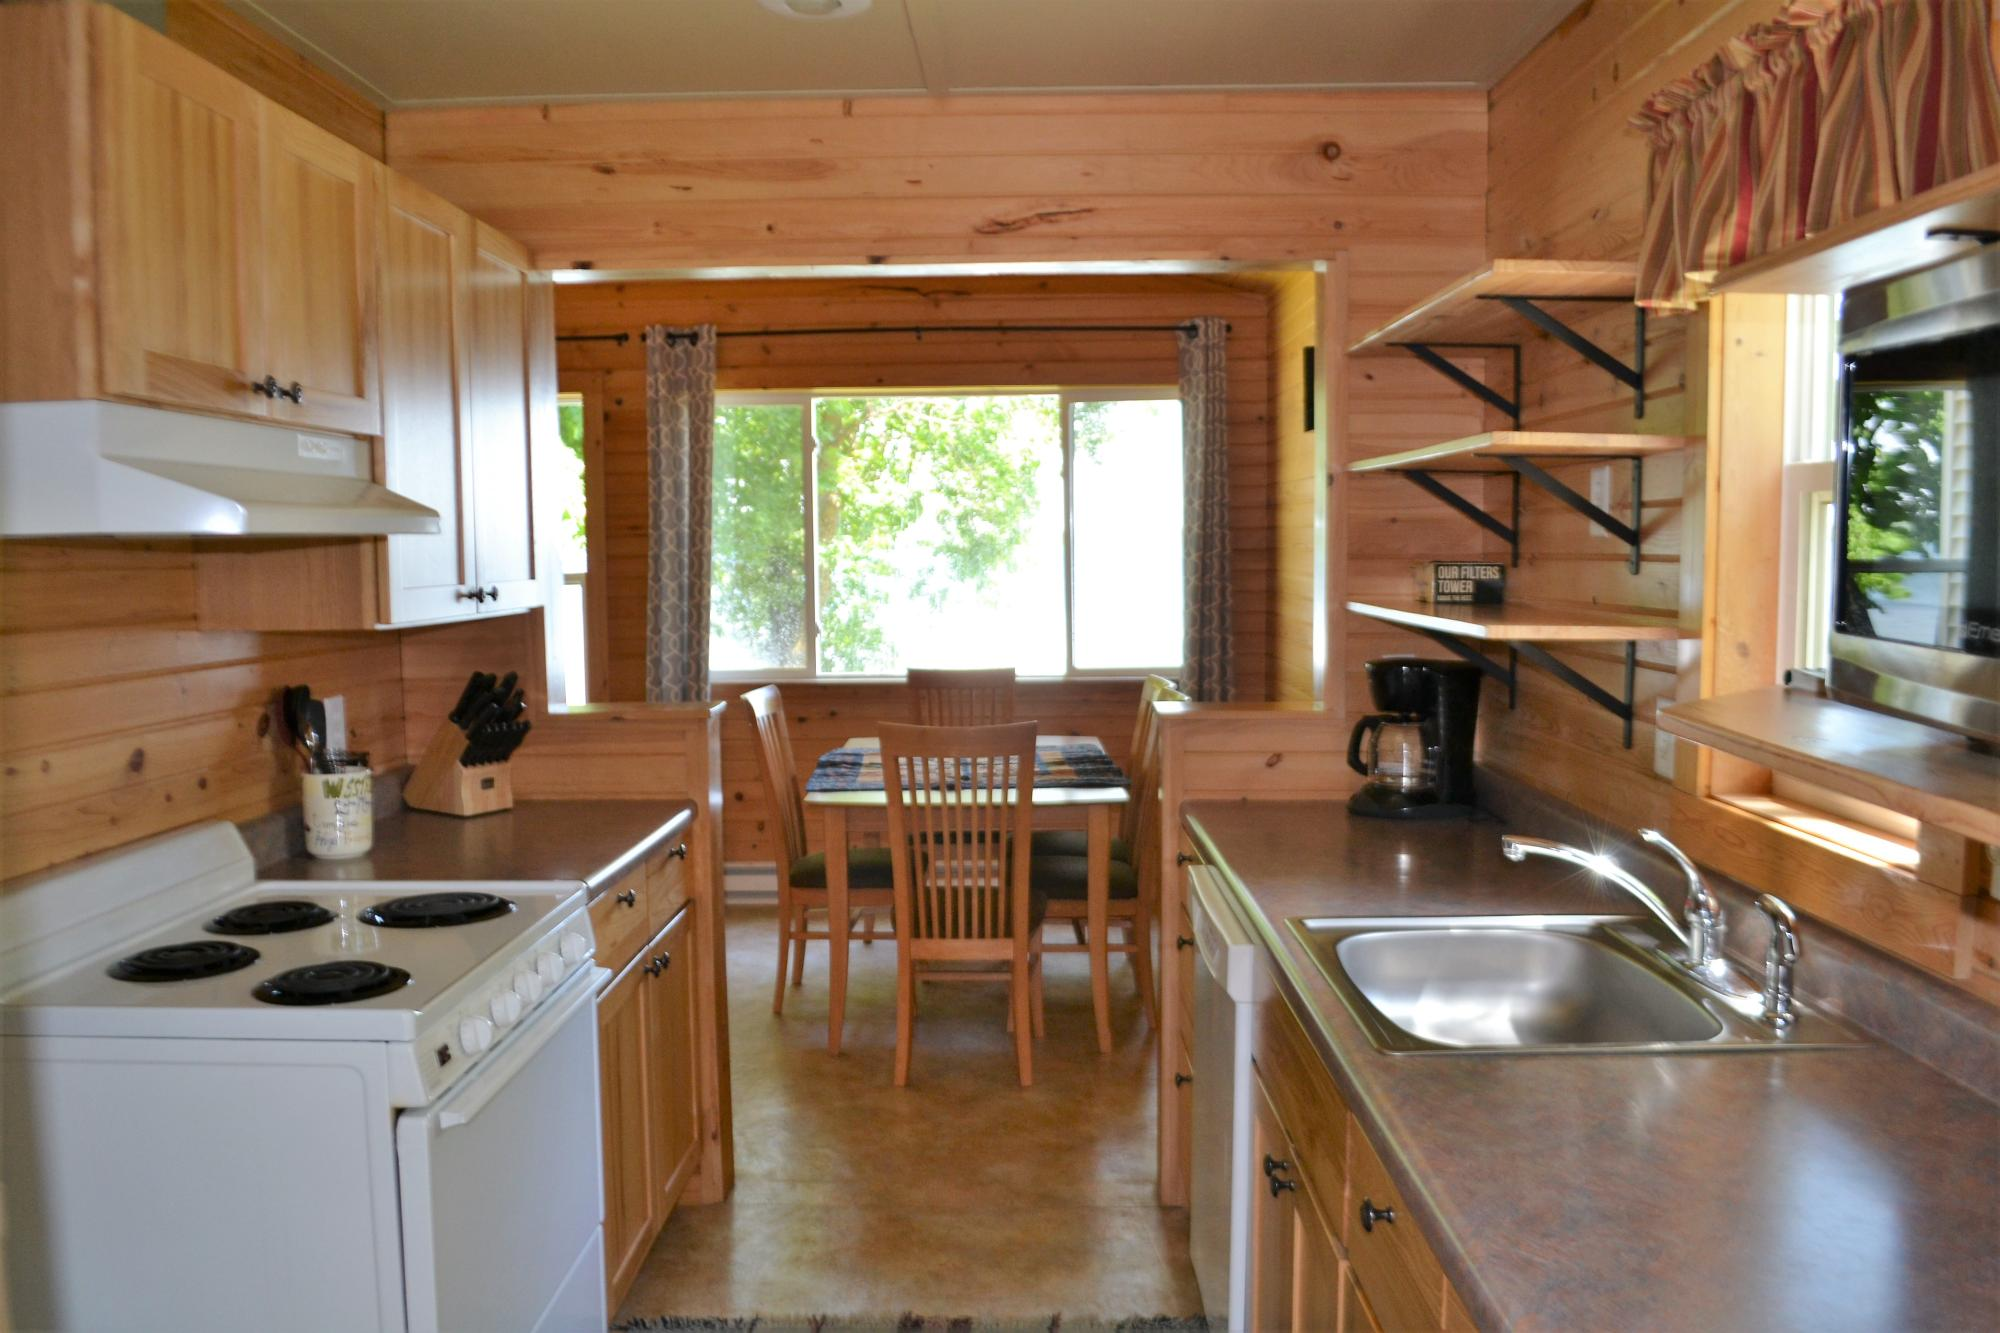 cabin_2_kitchen.JPG